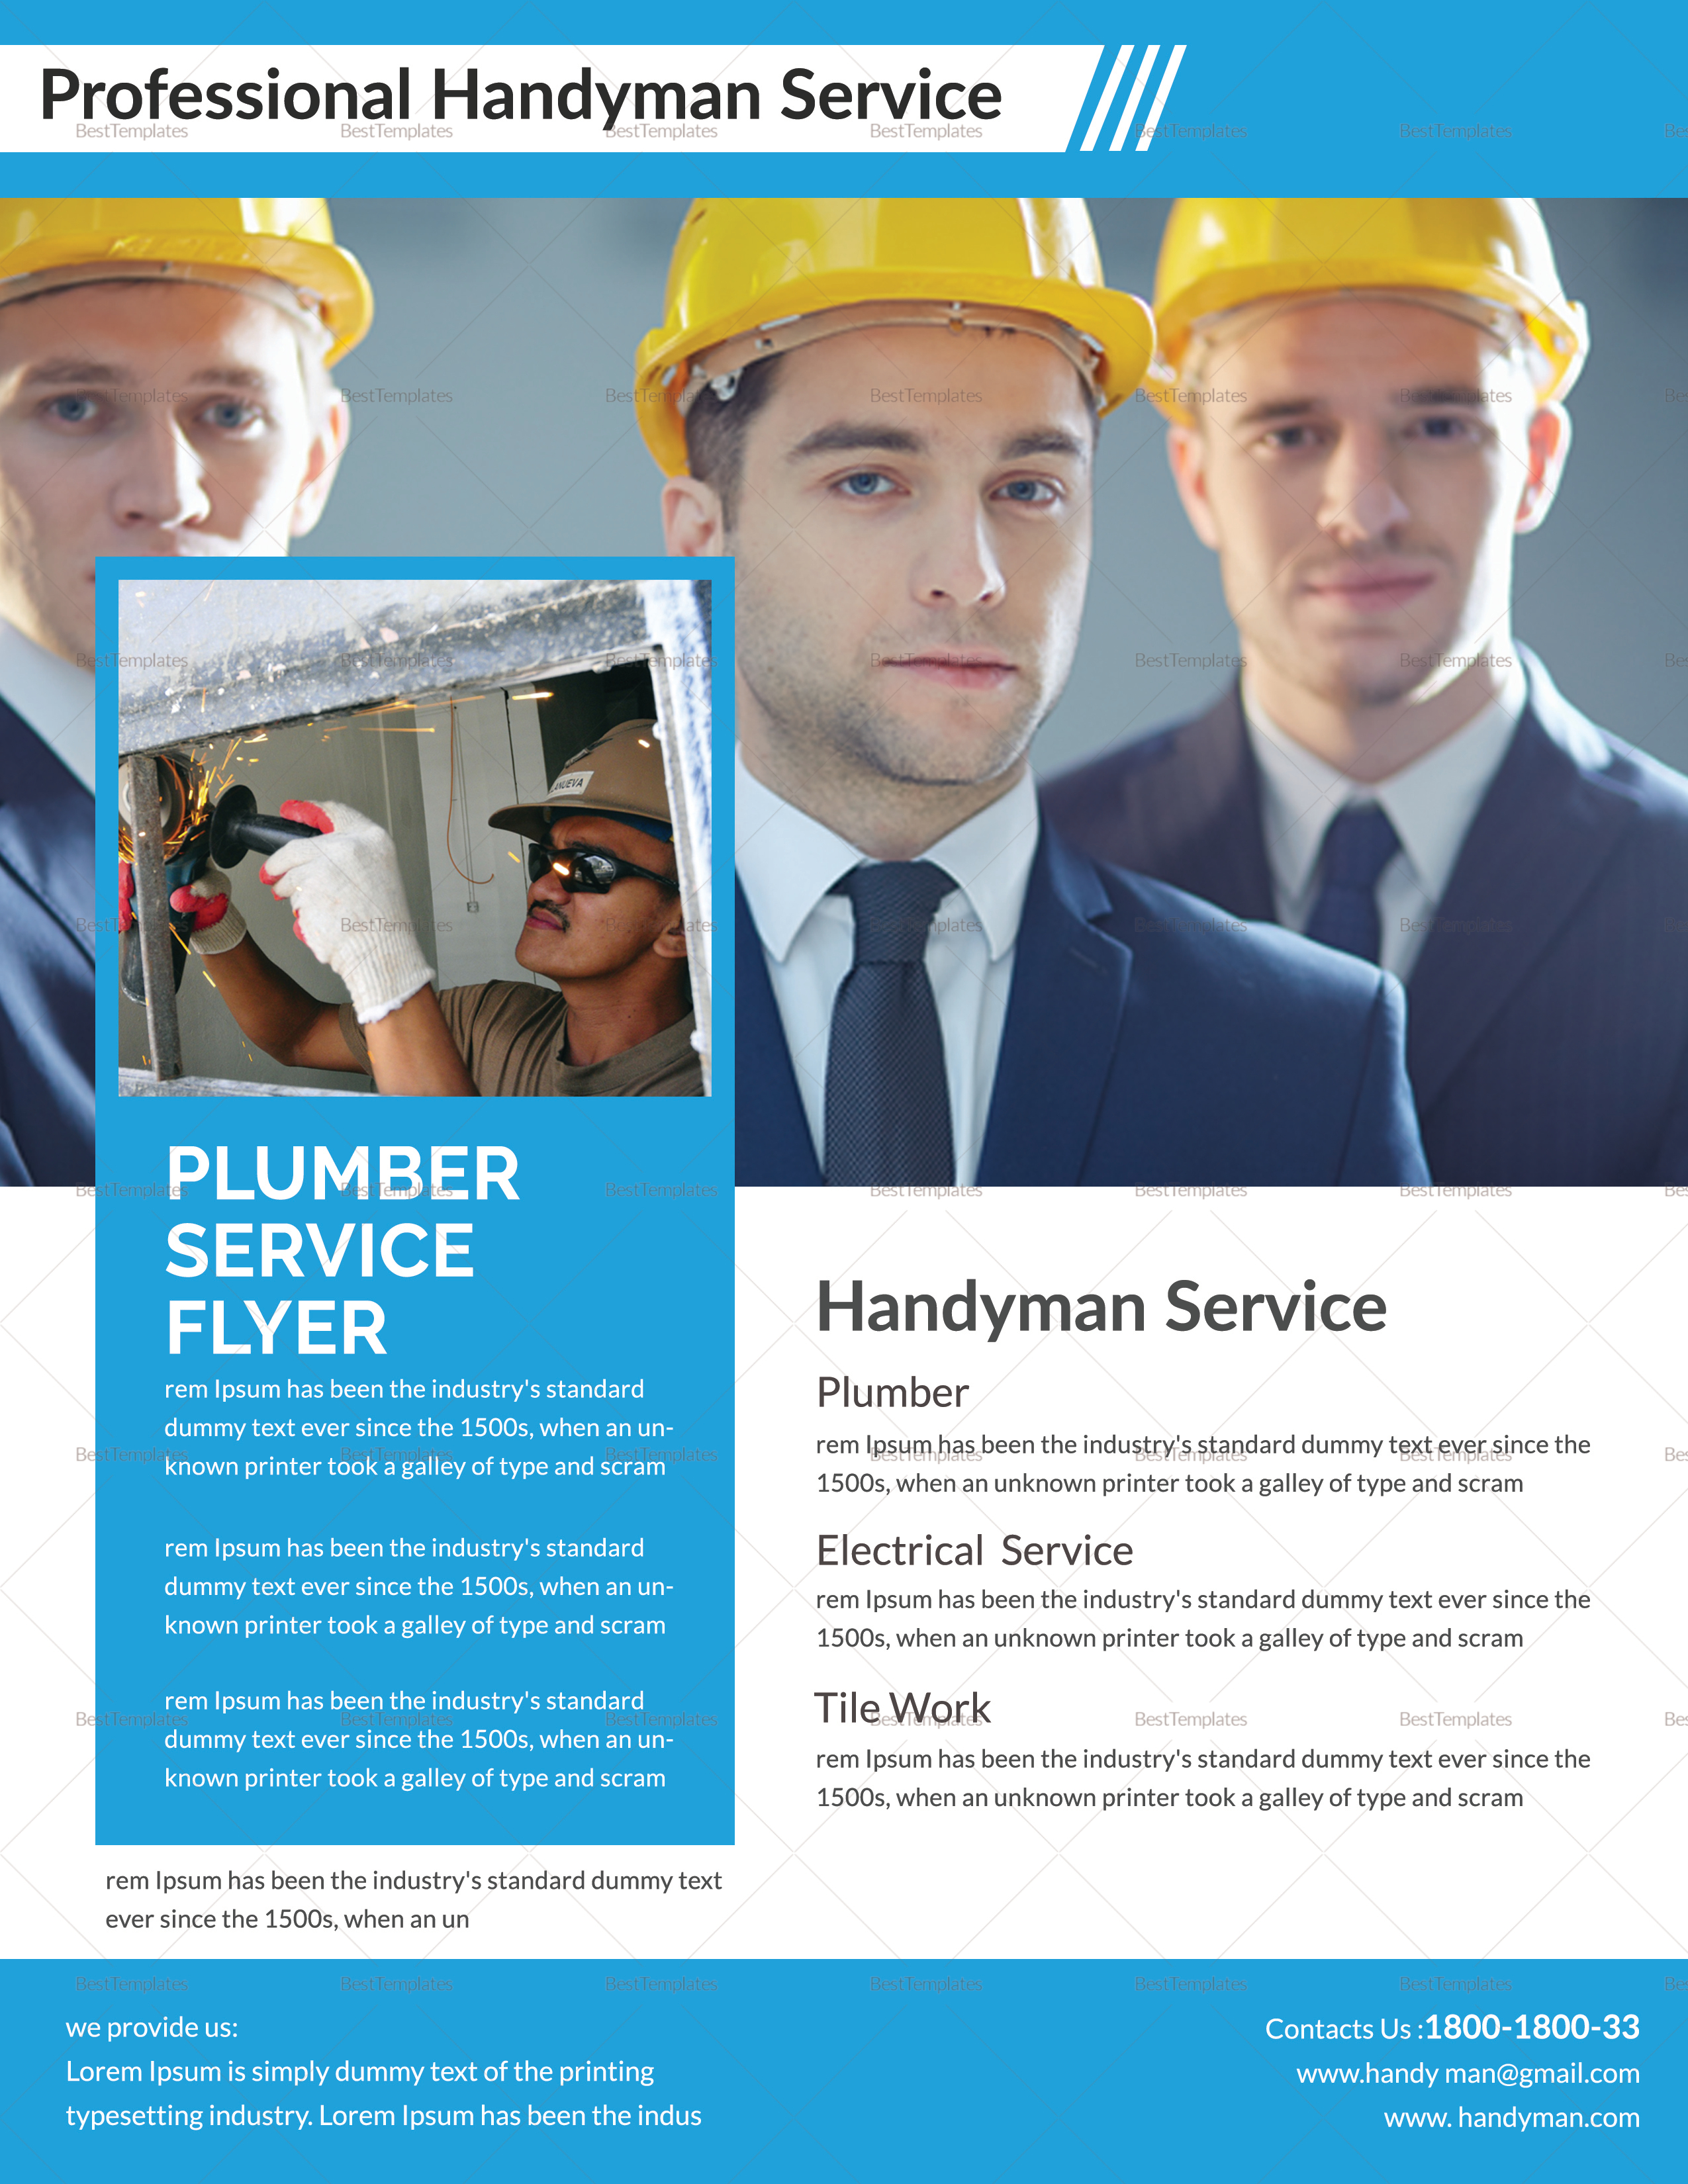 Professional Handy Man Flyer Template